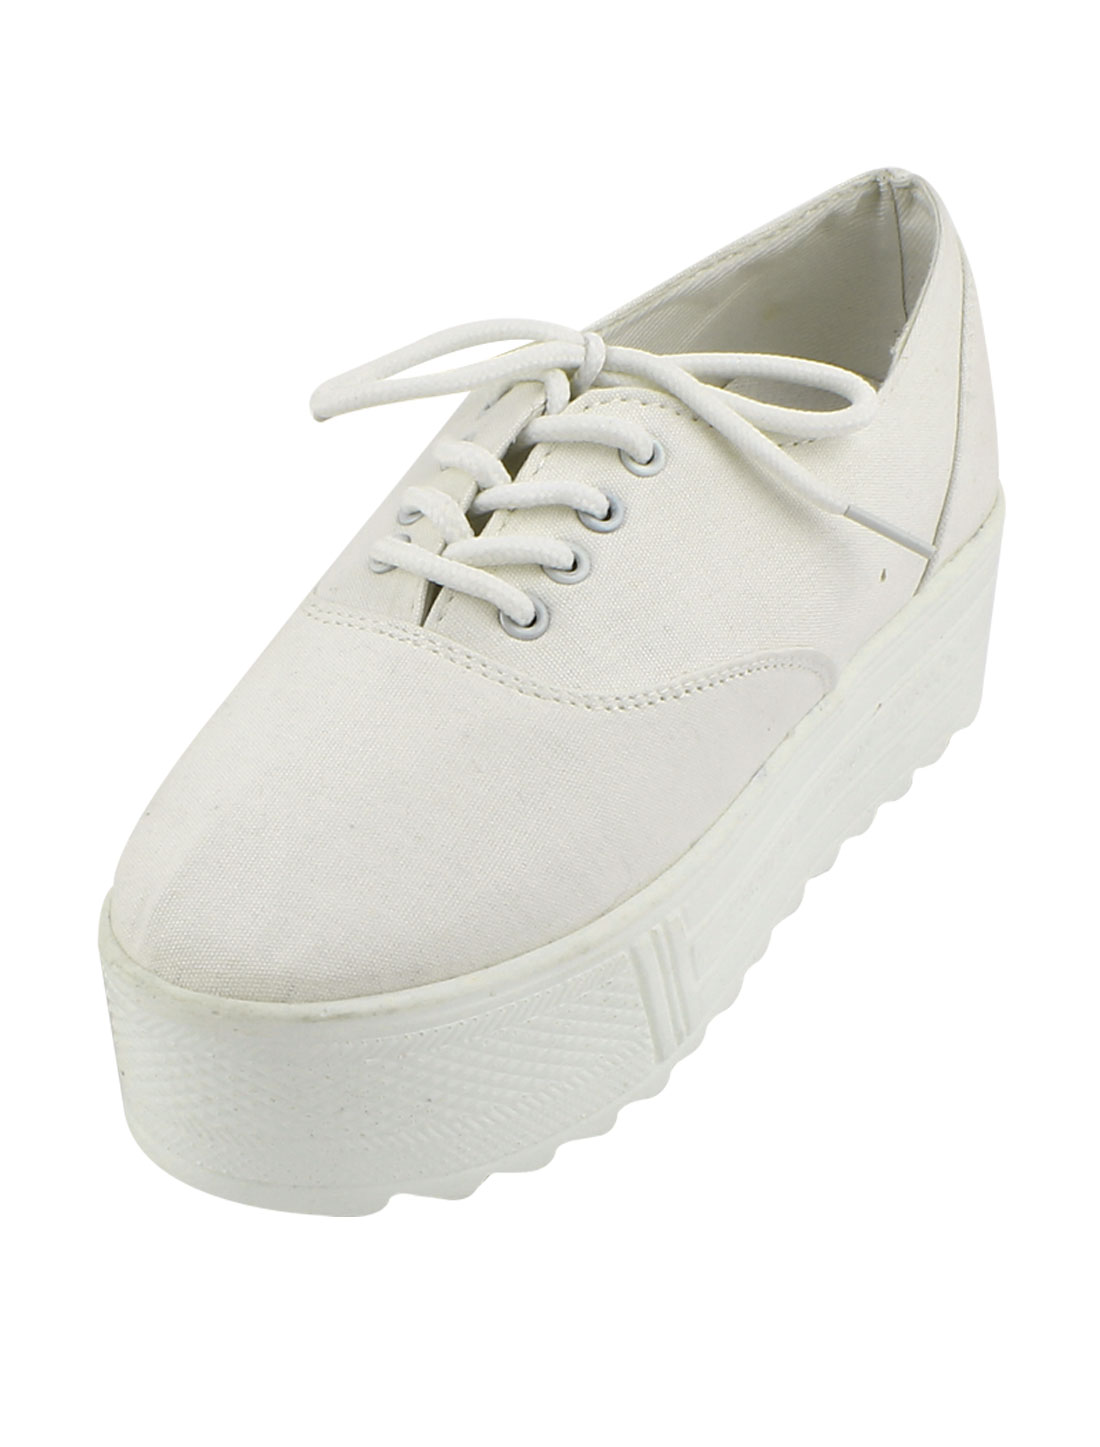 Canvas Shoes Lace Up Low Top Sneakers White US 6.5 for Women